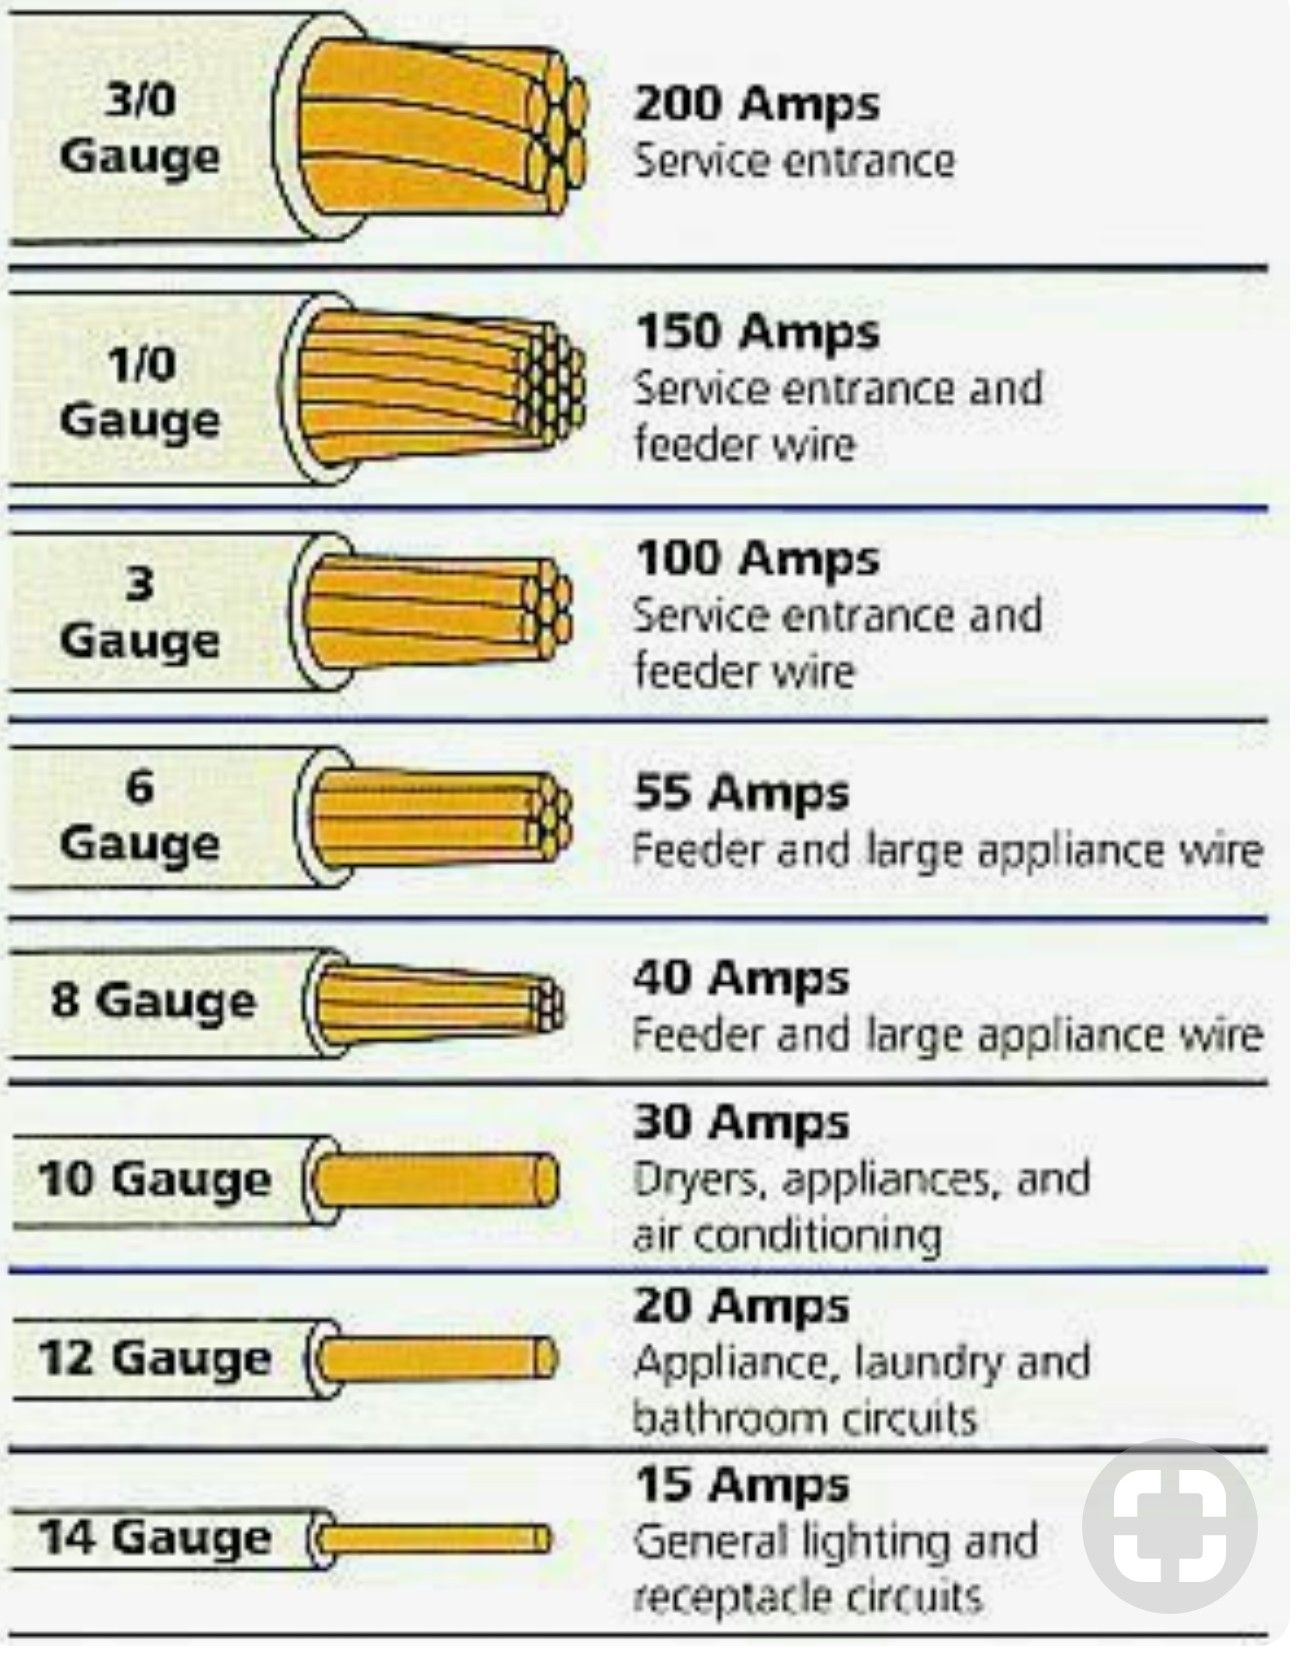 Pin By Emily S On Electrical Pinterest Wiring Residential Service Diagram Not Sure Why I Like Classificationsmight Be Because It Reminds Me Of Yarn